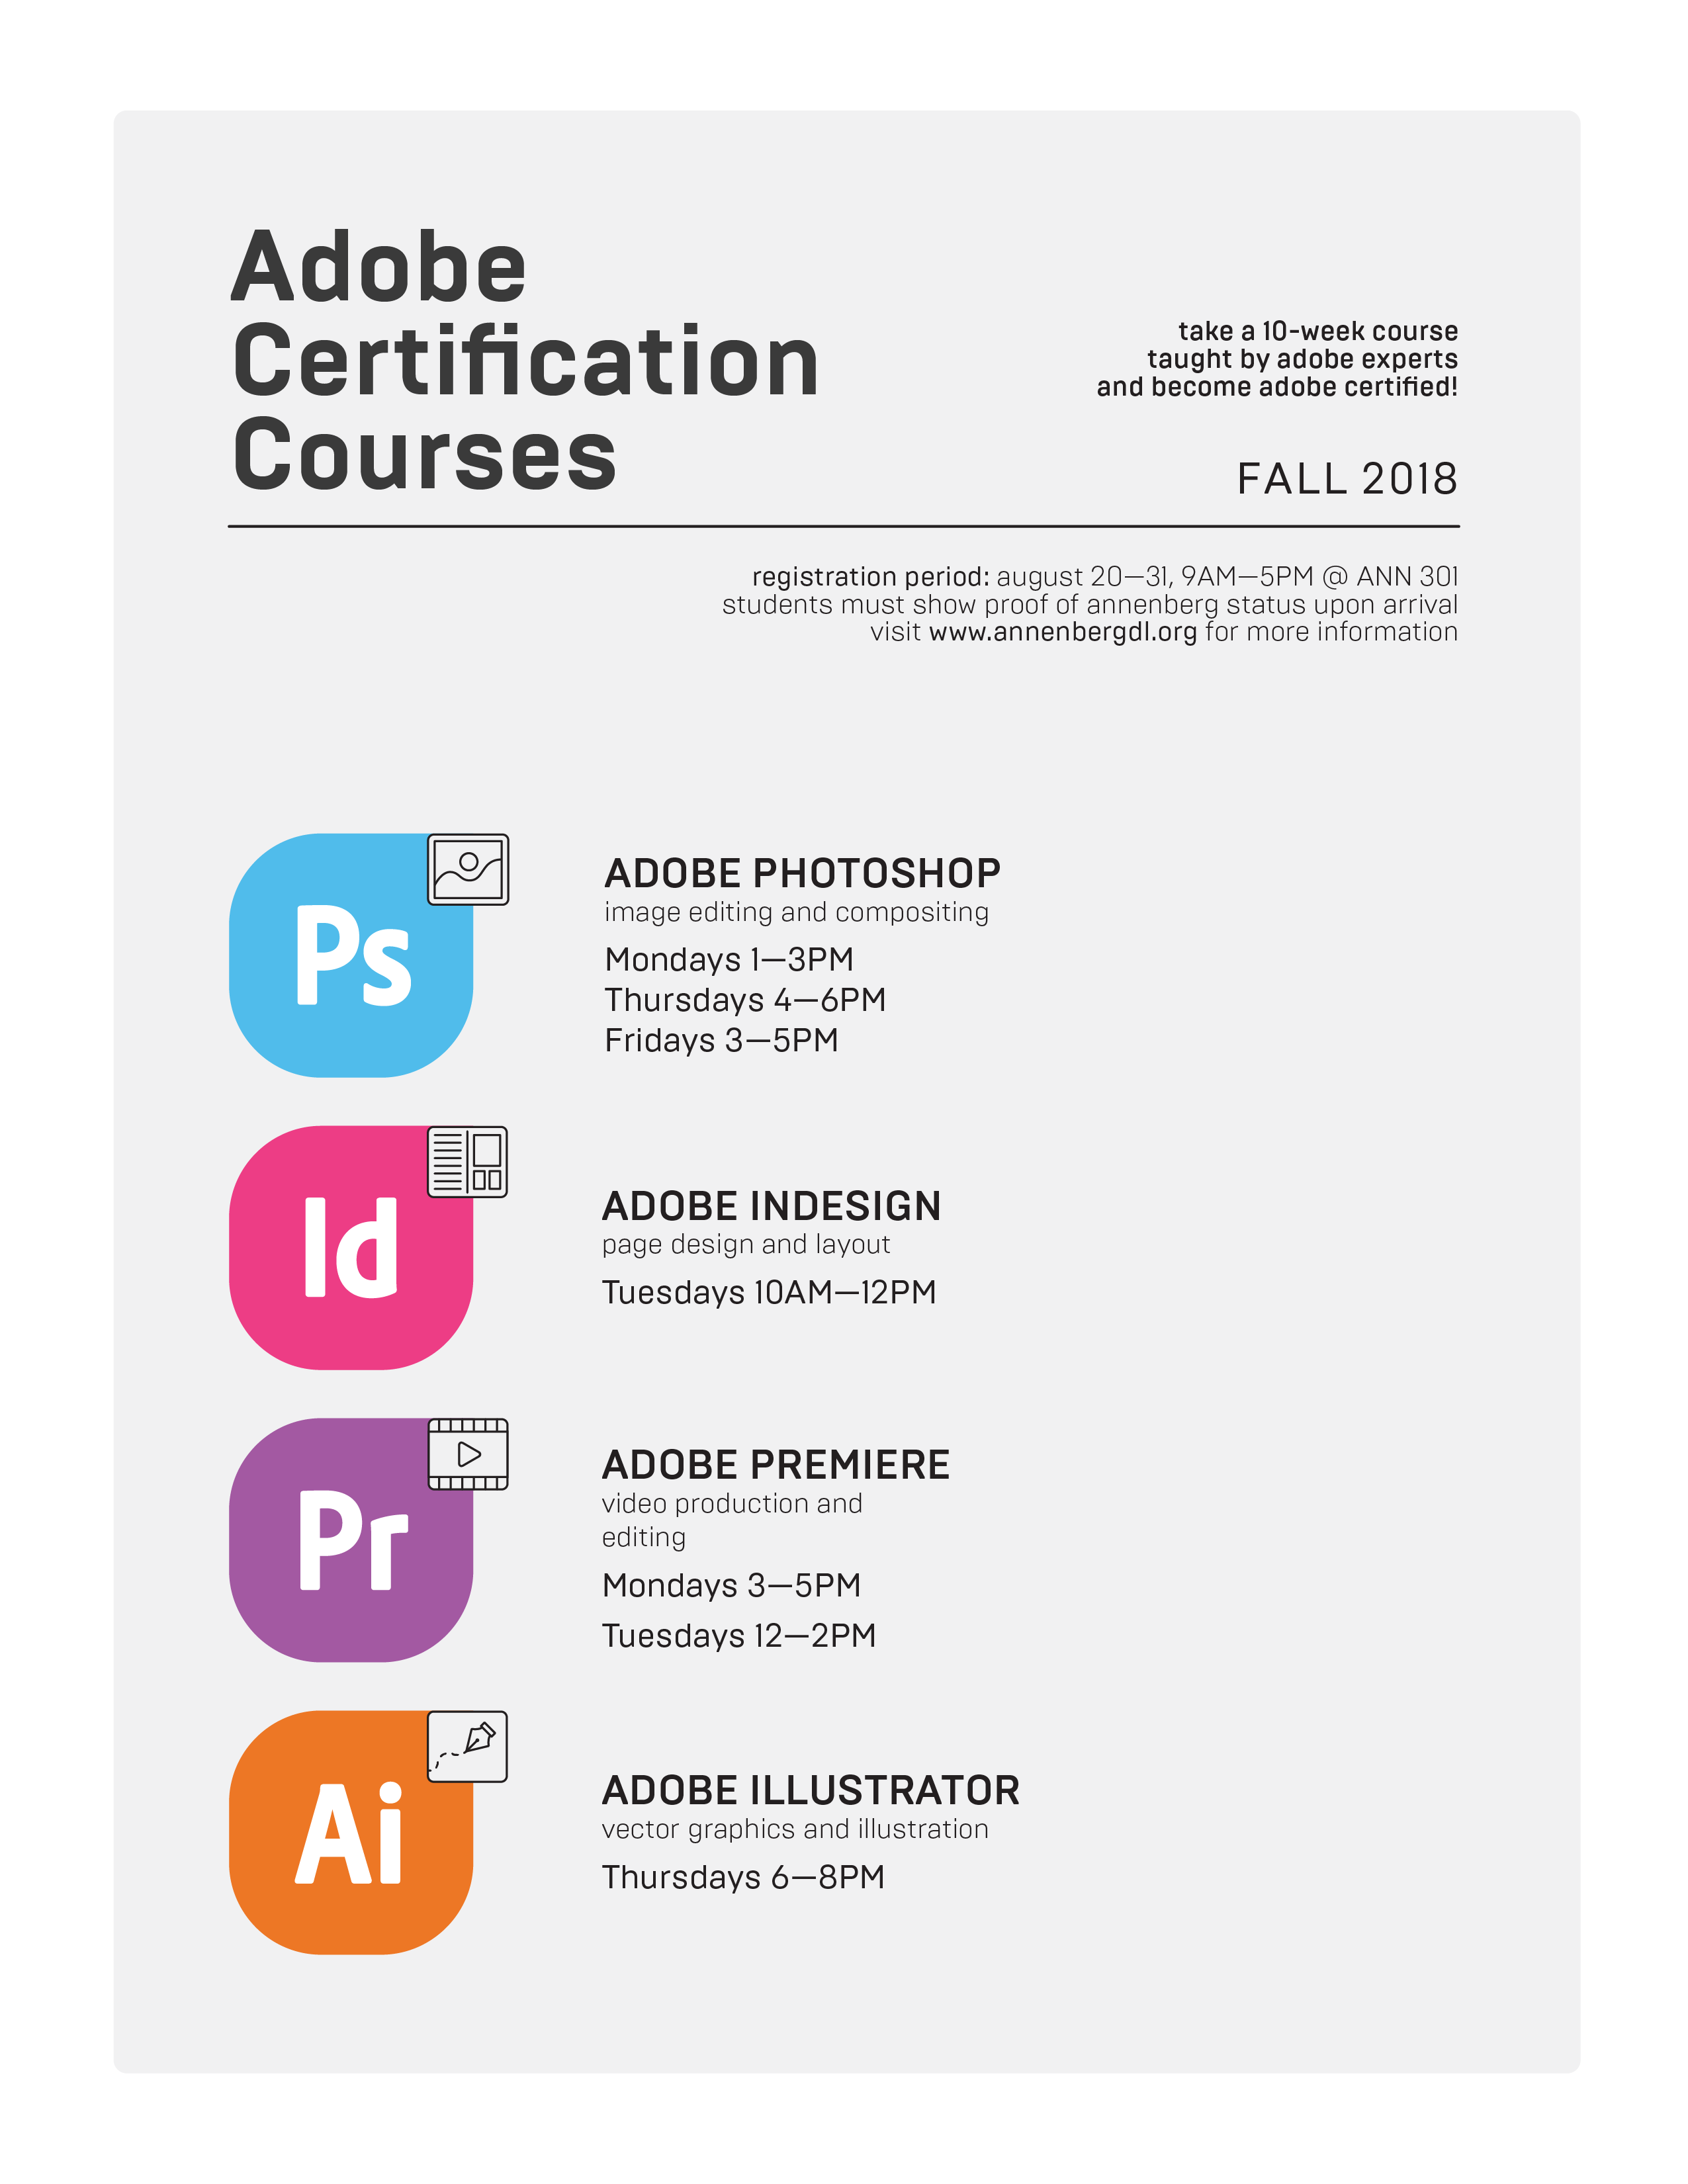 Fall 2018 Certification Courses Annenberg Digital Lounge